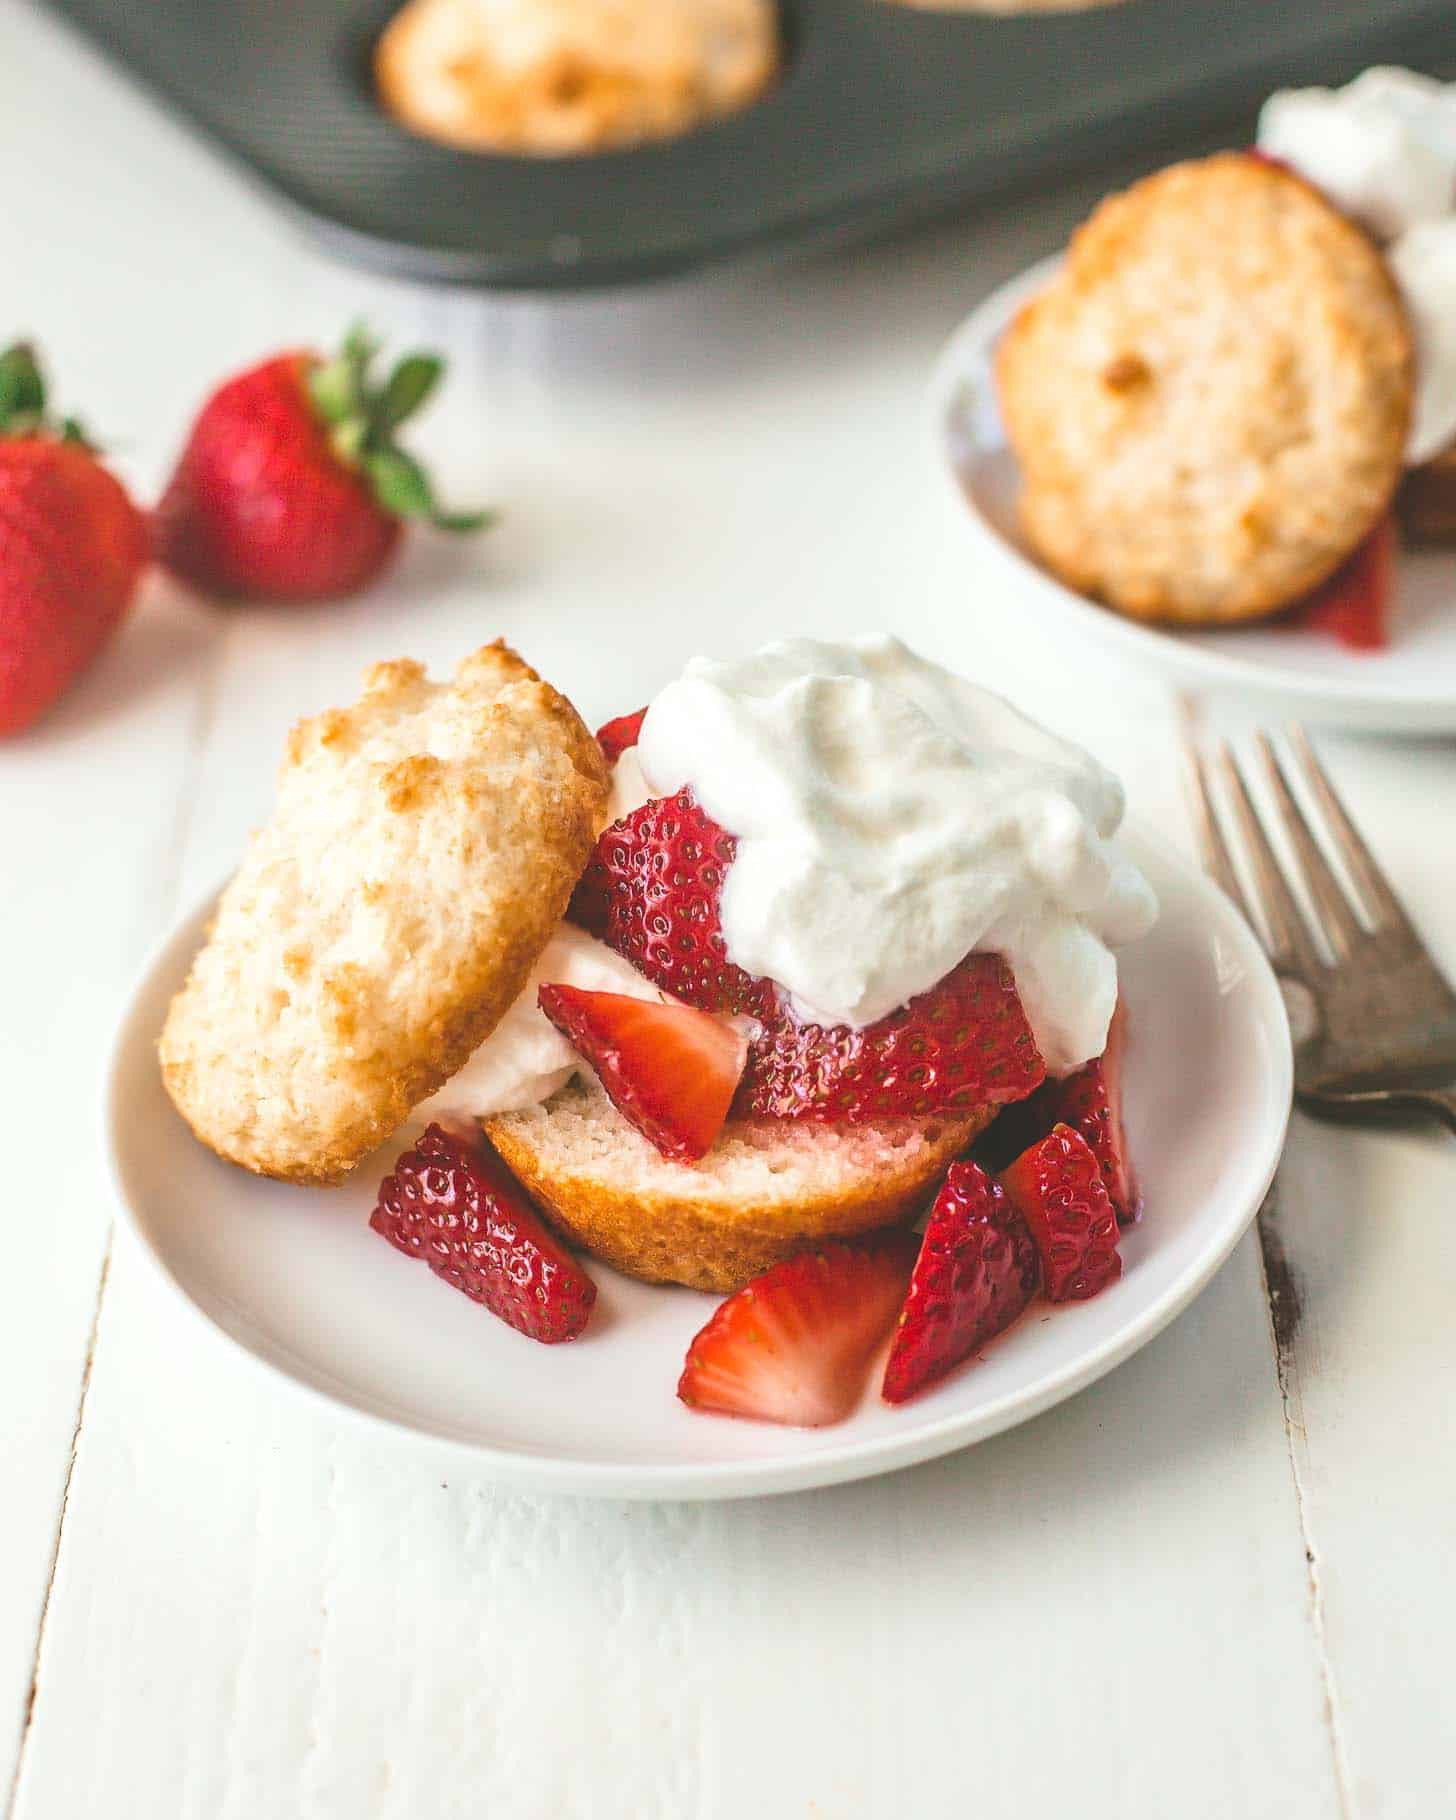 strawberry shortcake topped with whipped cream